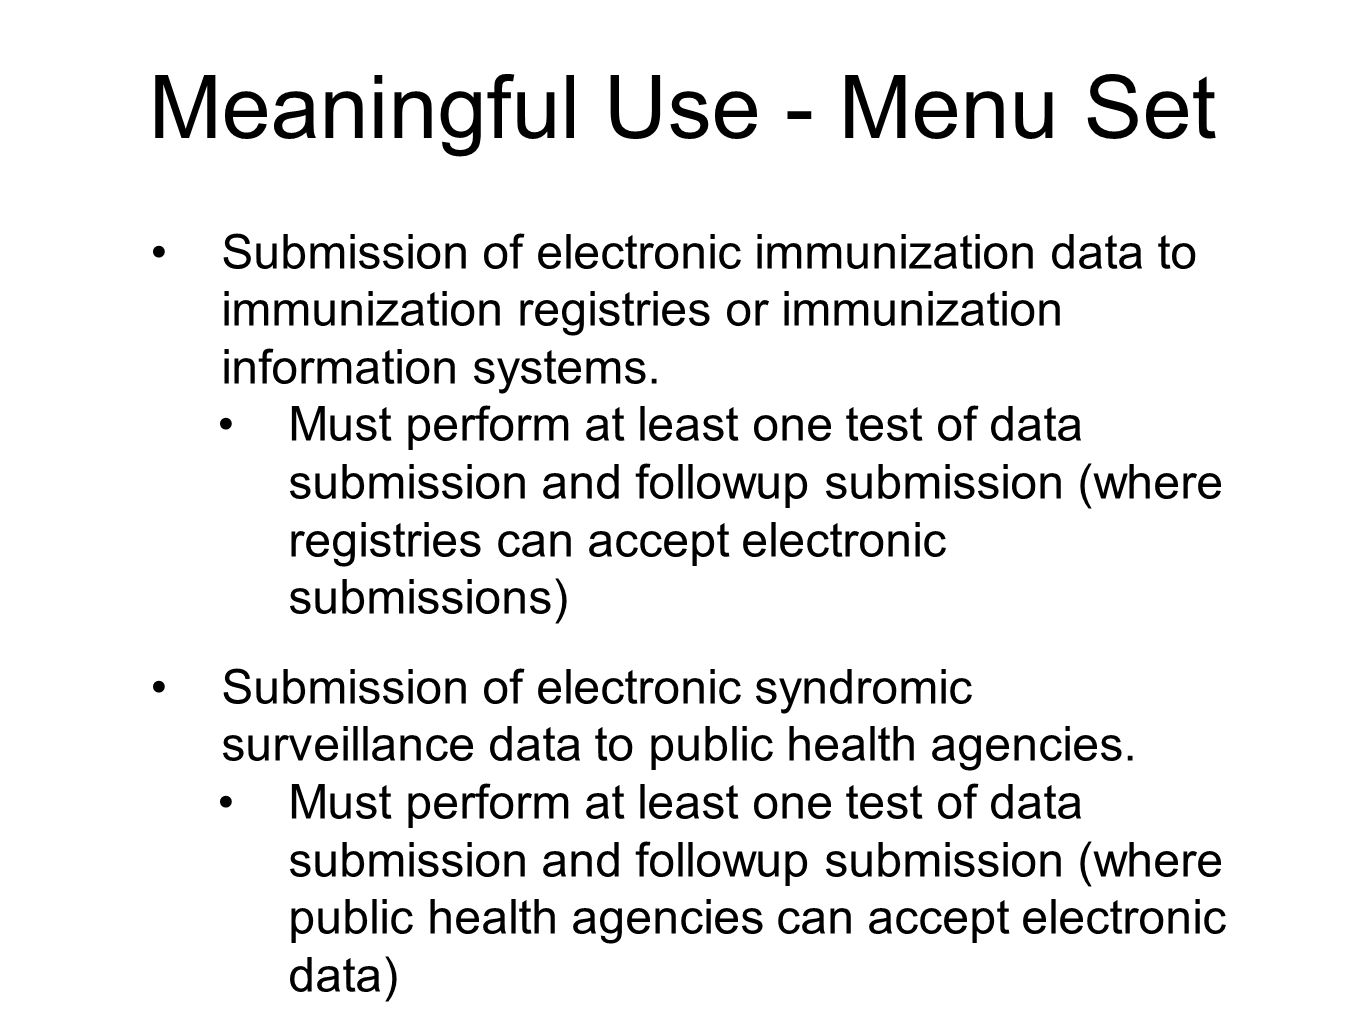 Submission of electronic immunization data to immunization registries or immunization information systems. Must perform at least one test of data subm